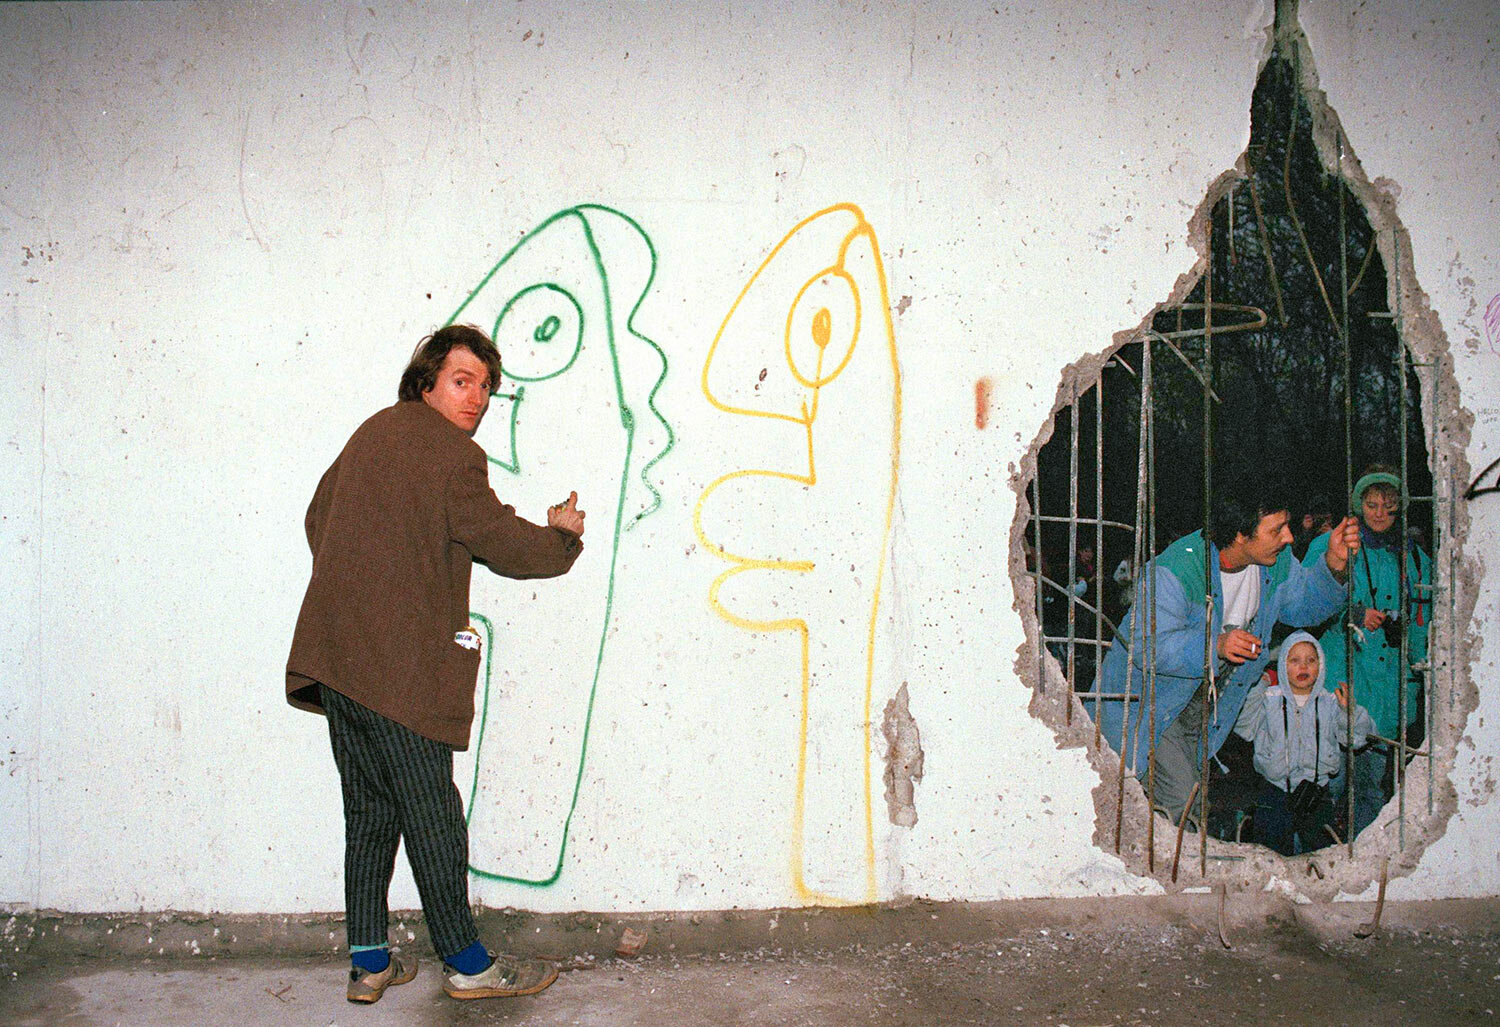 Thierry Noir of West Berlin sprays graffiti on the Berlin Wall in East Berlin near the Brandenburg Gate, Jan. 13, 1990. Before he could finish the job, East German police came and he had to escape through the hole in the wall. (AP Photo/Hans Joerg Krauss)